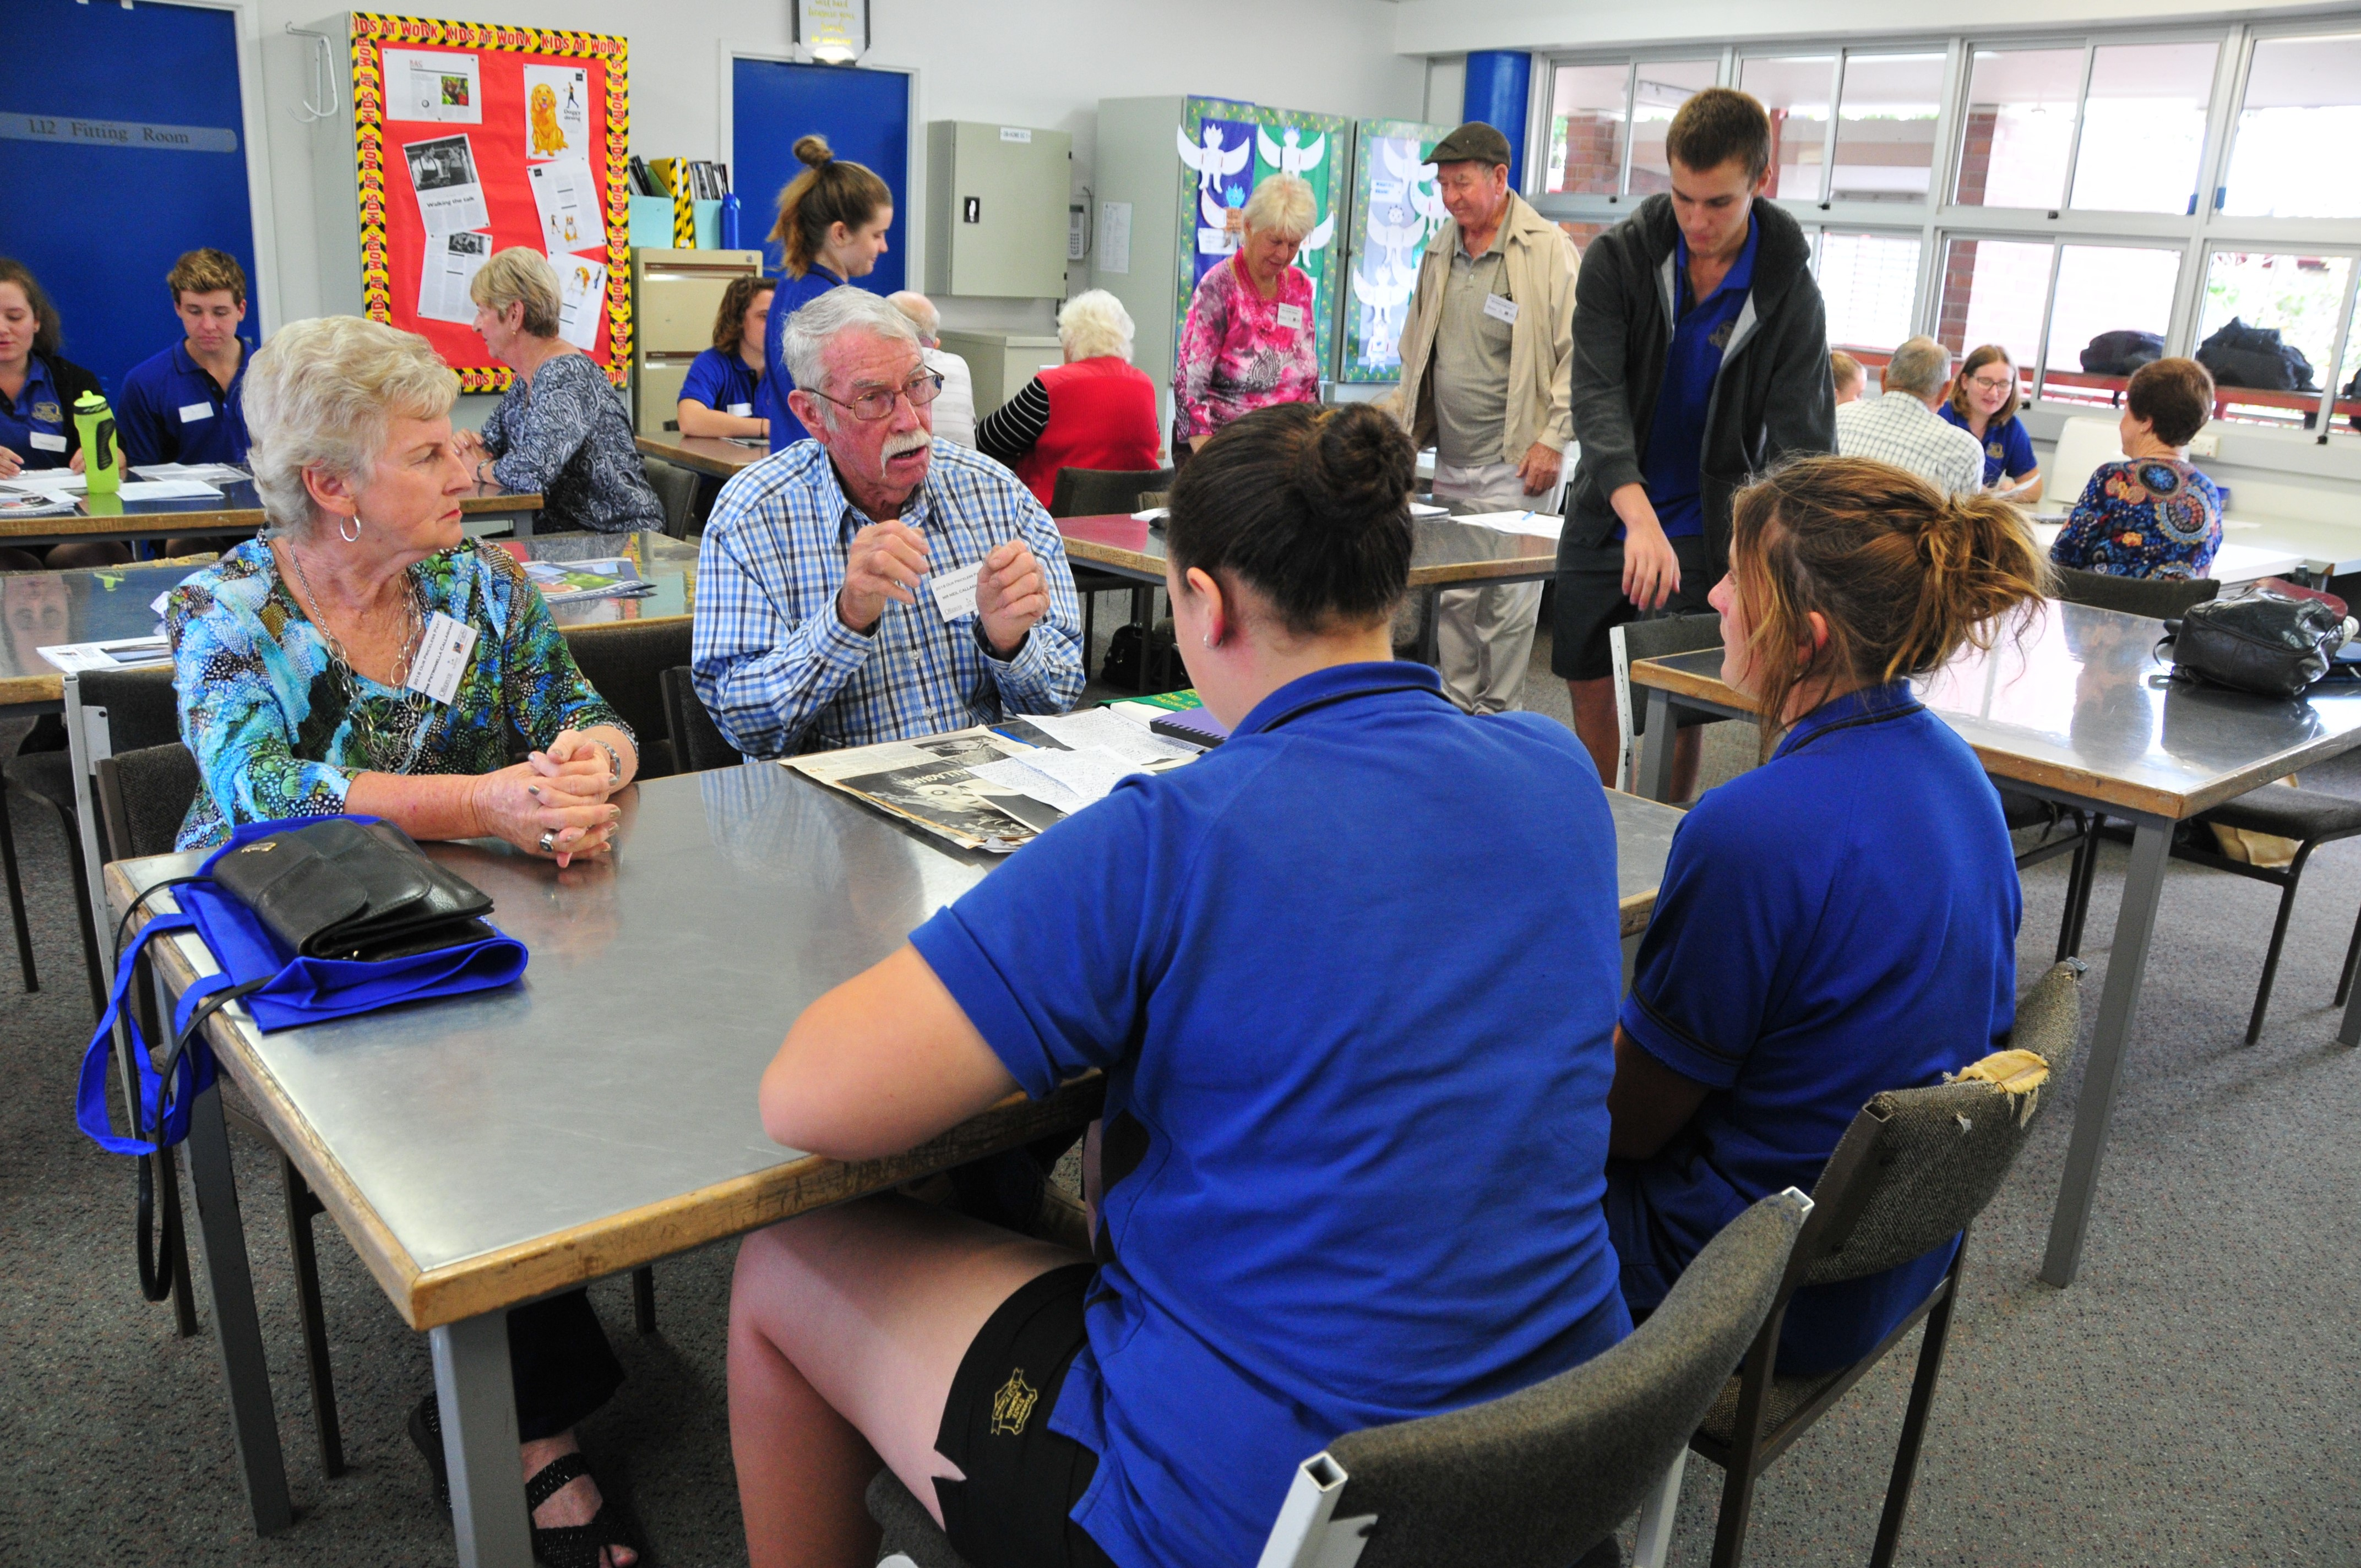 Students and Special Seniors meet for interviews at Rosedale State School (Image: D Paddick)